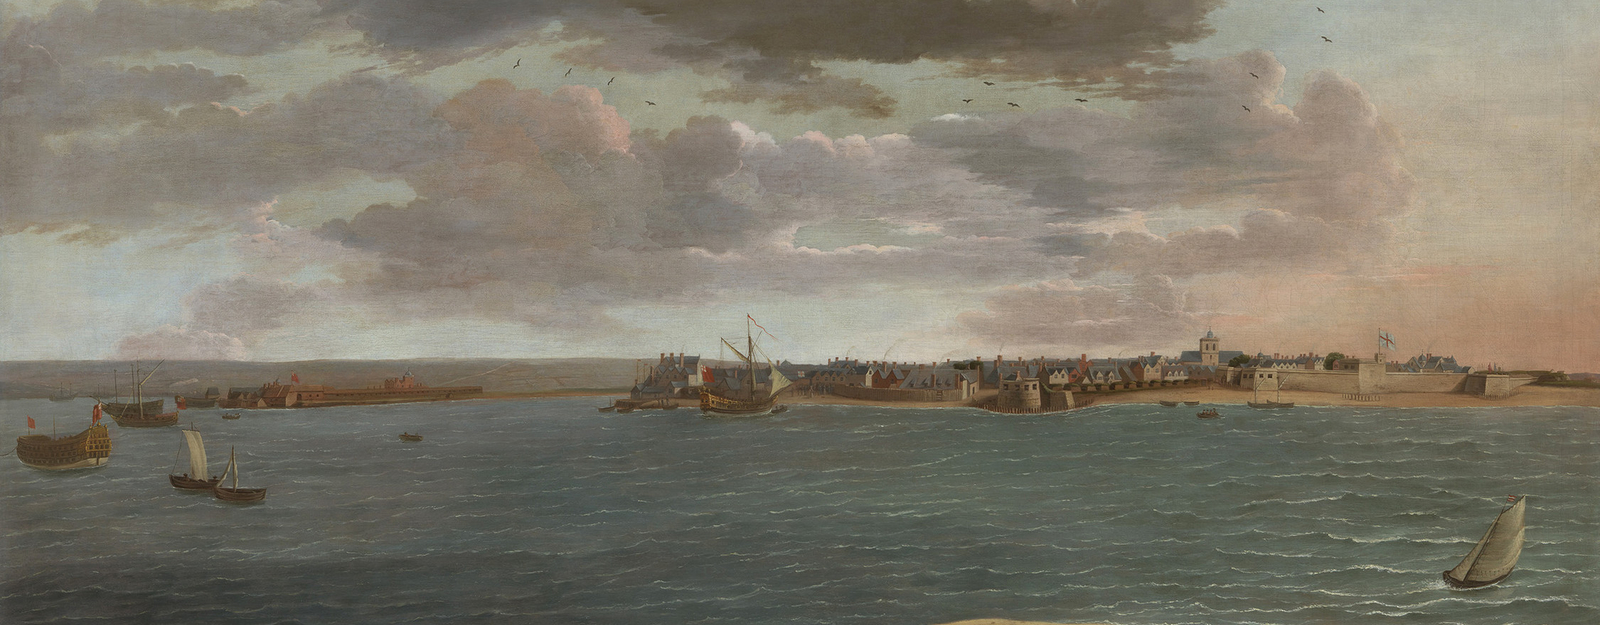 Danckerts was a landscape painter born and trained in The Hague who had visited Italy before settling in England during the 1660s and 70s. Records show Danckerts receiving payments from the King in the 1675 and 1679, while the inventories of Charles II an